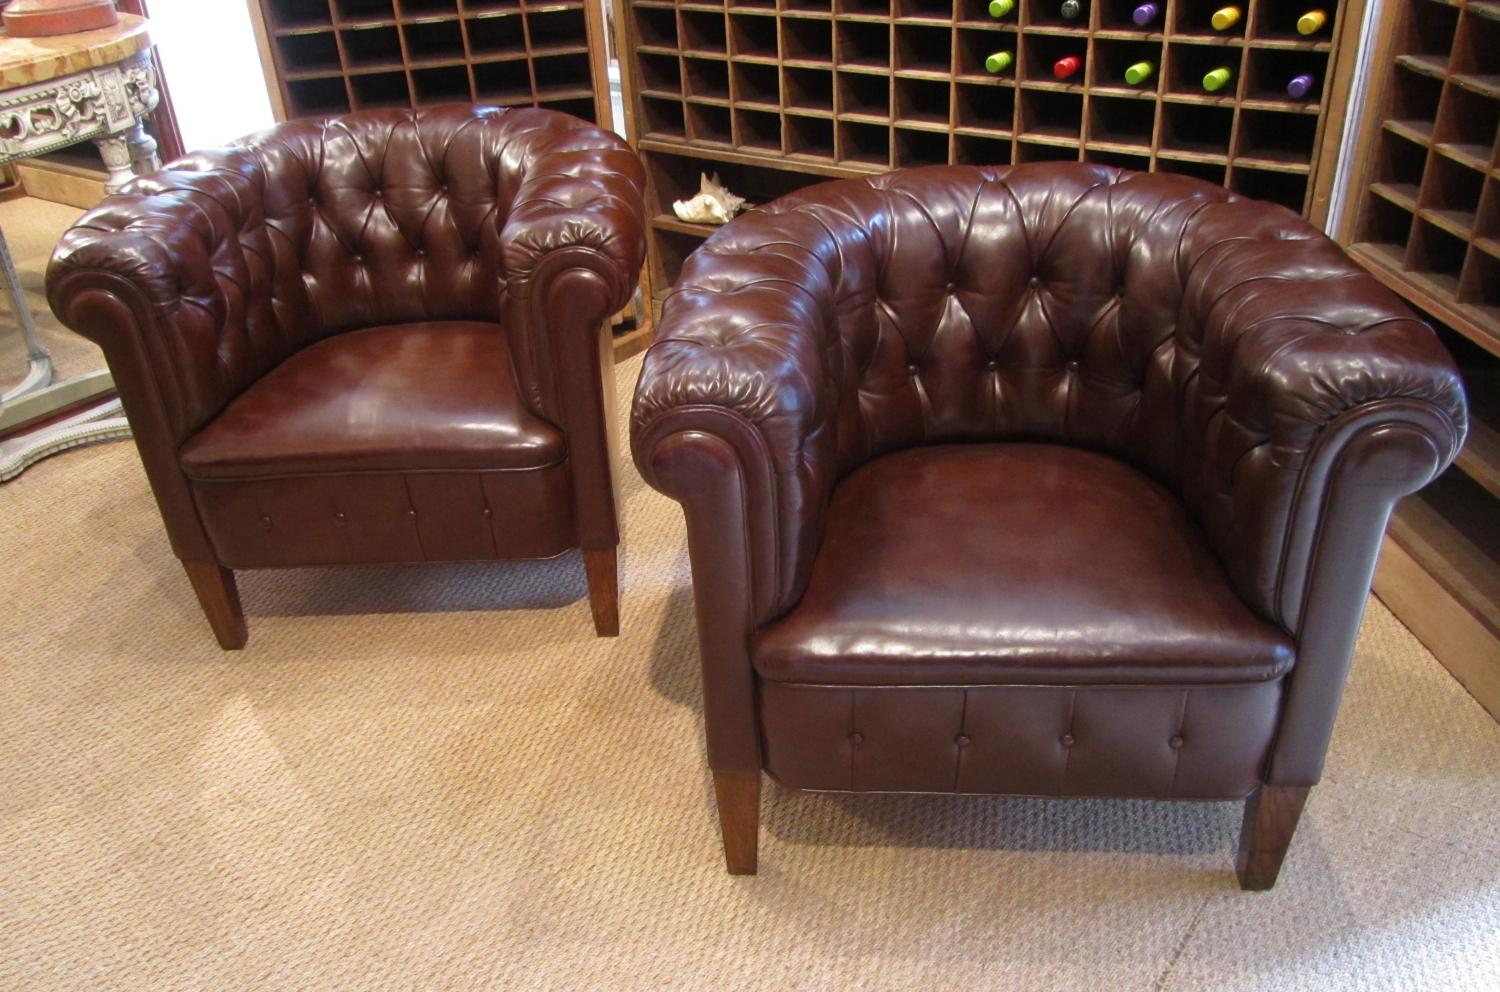 A pair of Swedish leather chairs